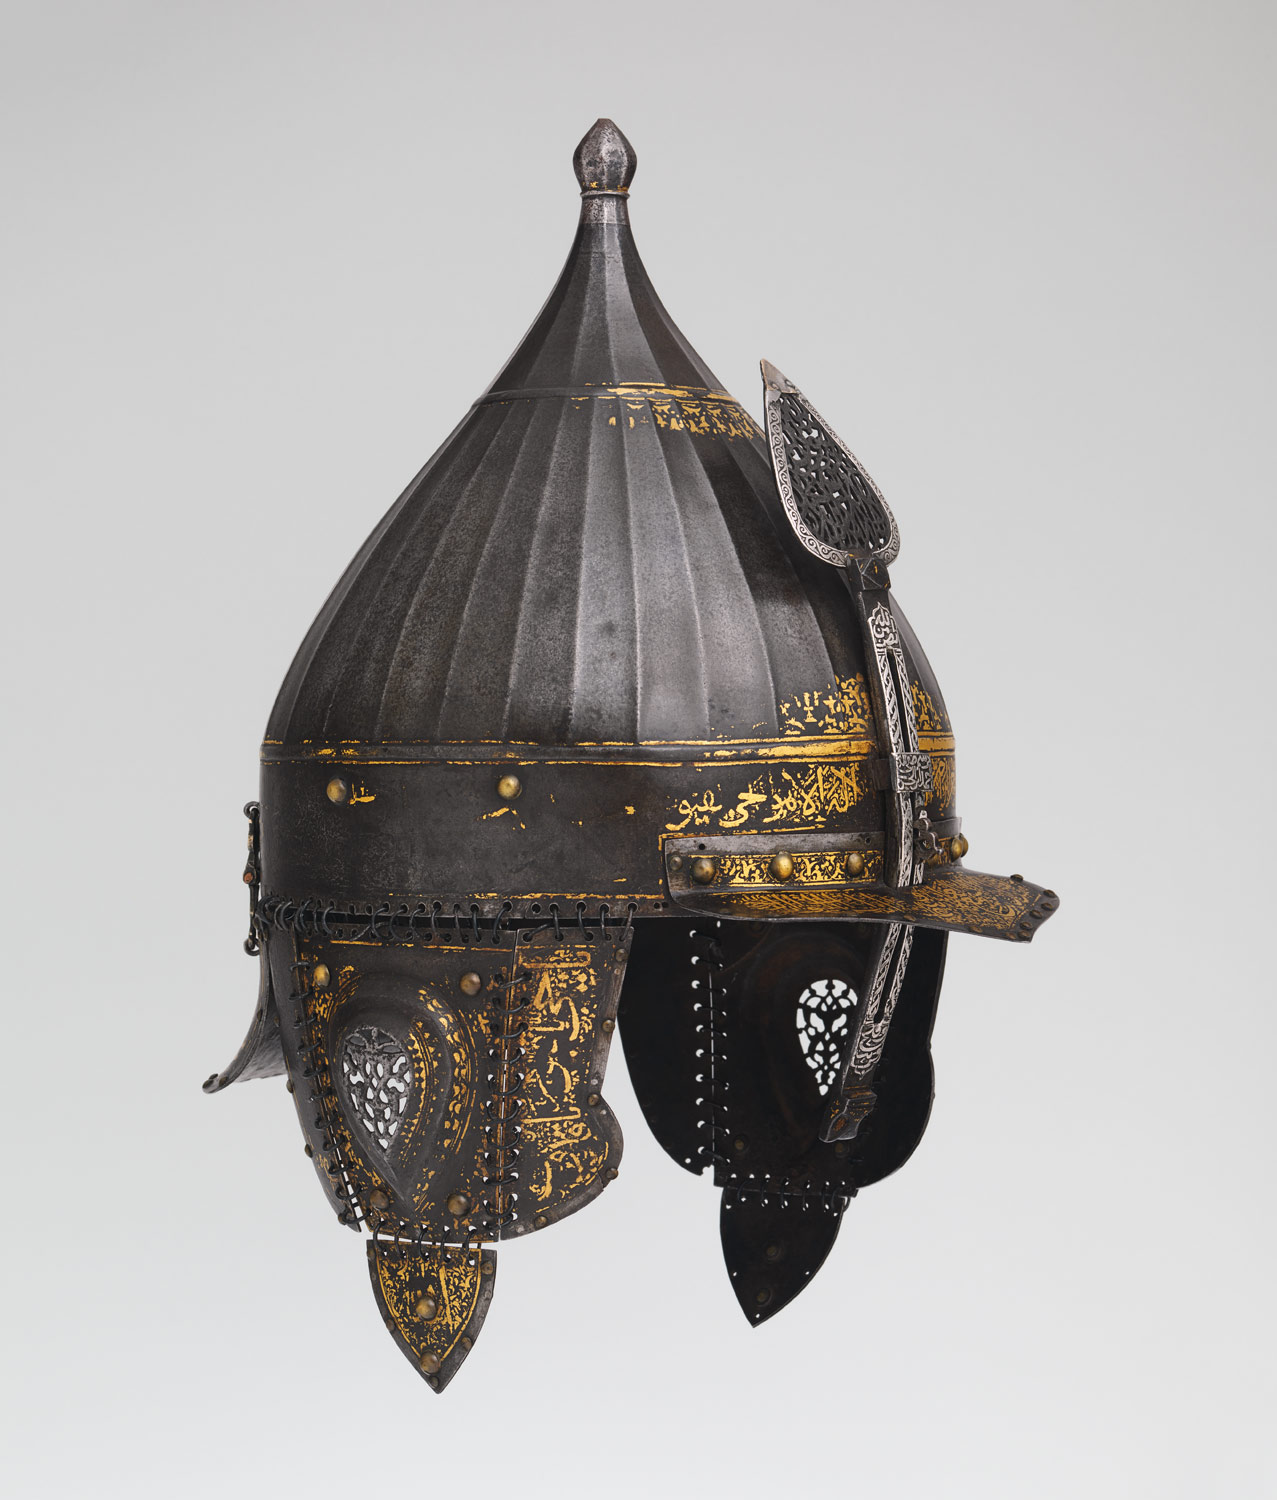 Helmet Work Of Art Heilbrunn Timeline Of Art History The